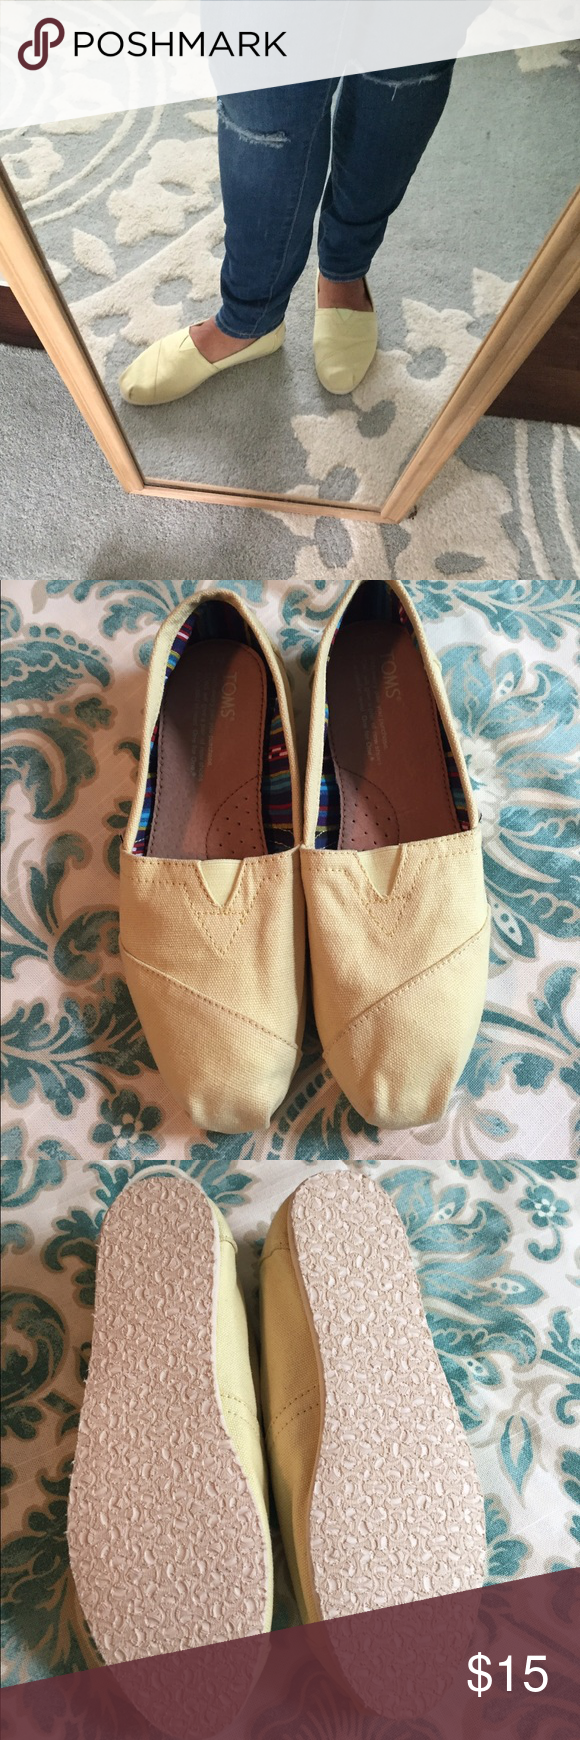 Women's light yellow Tom's Only worn to try on. TOMS Shoes Flats & Loafers